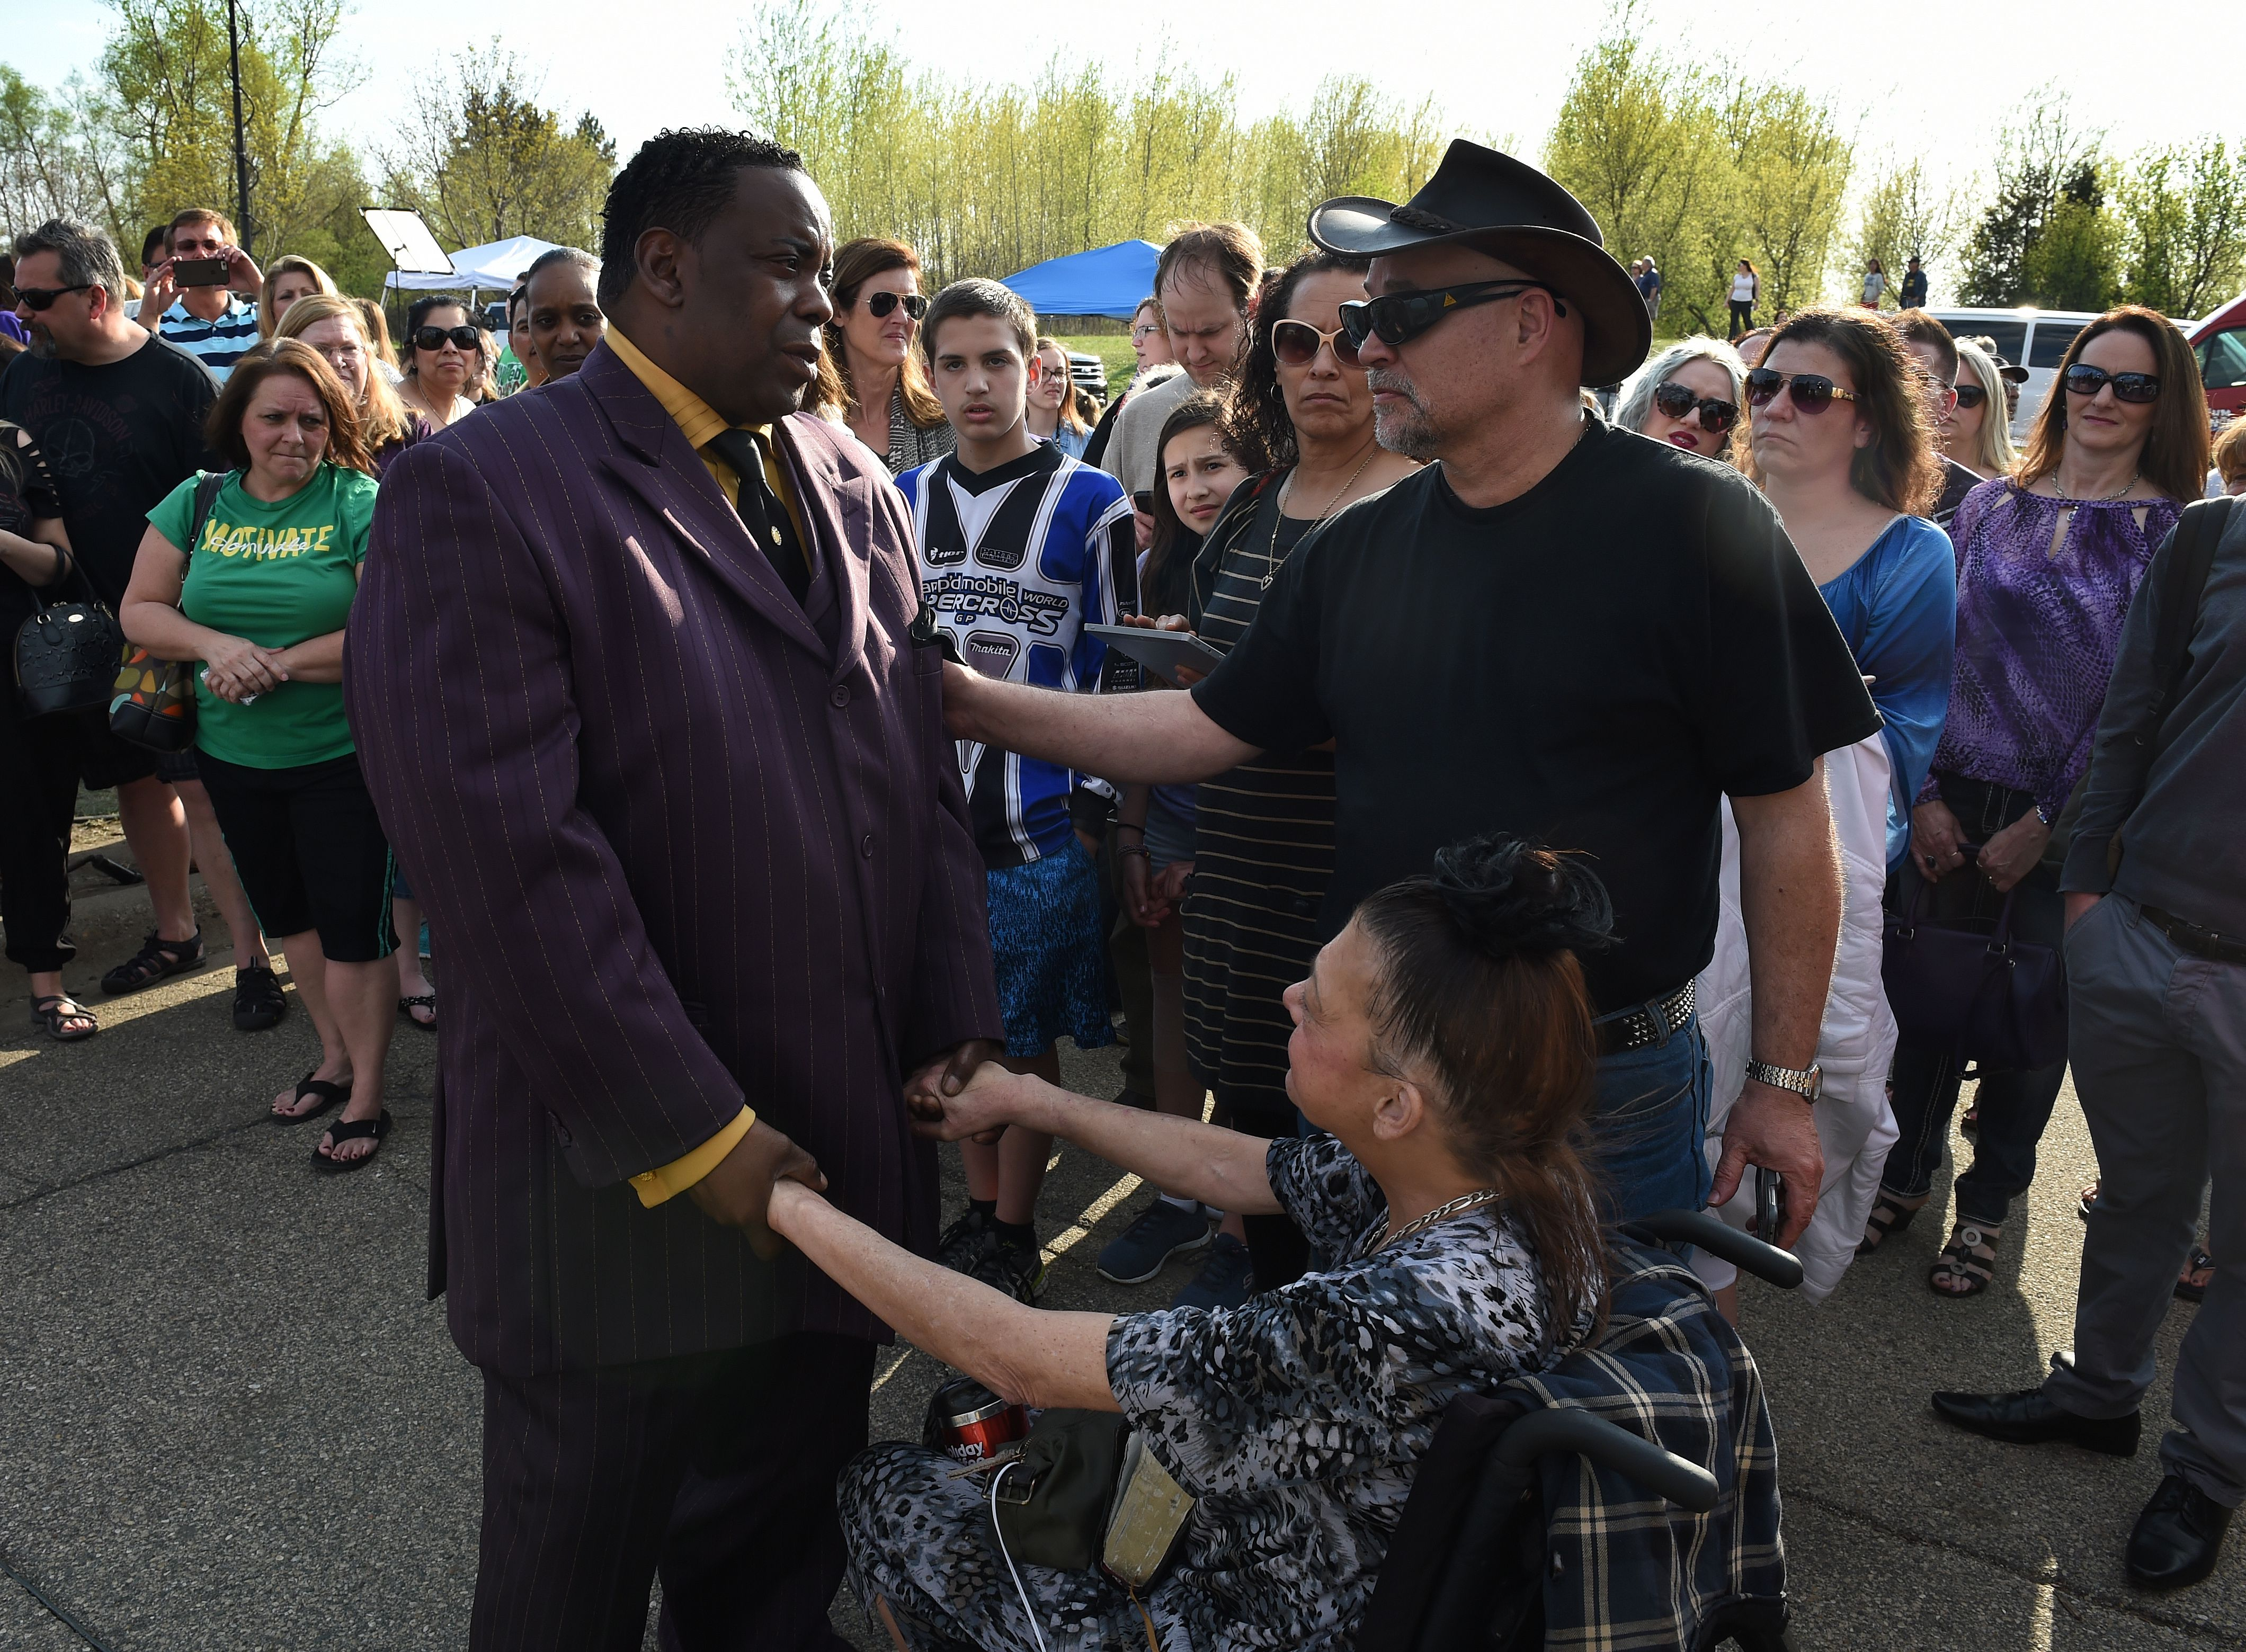 Maurice Phillips, left, the brother-in-law of Prince, talks with fans following a memorial service held inside the Paisley Park compound of music legend Prince. (Getty)